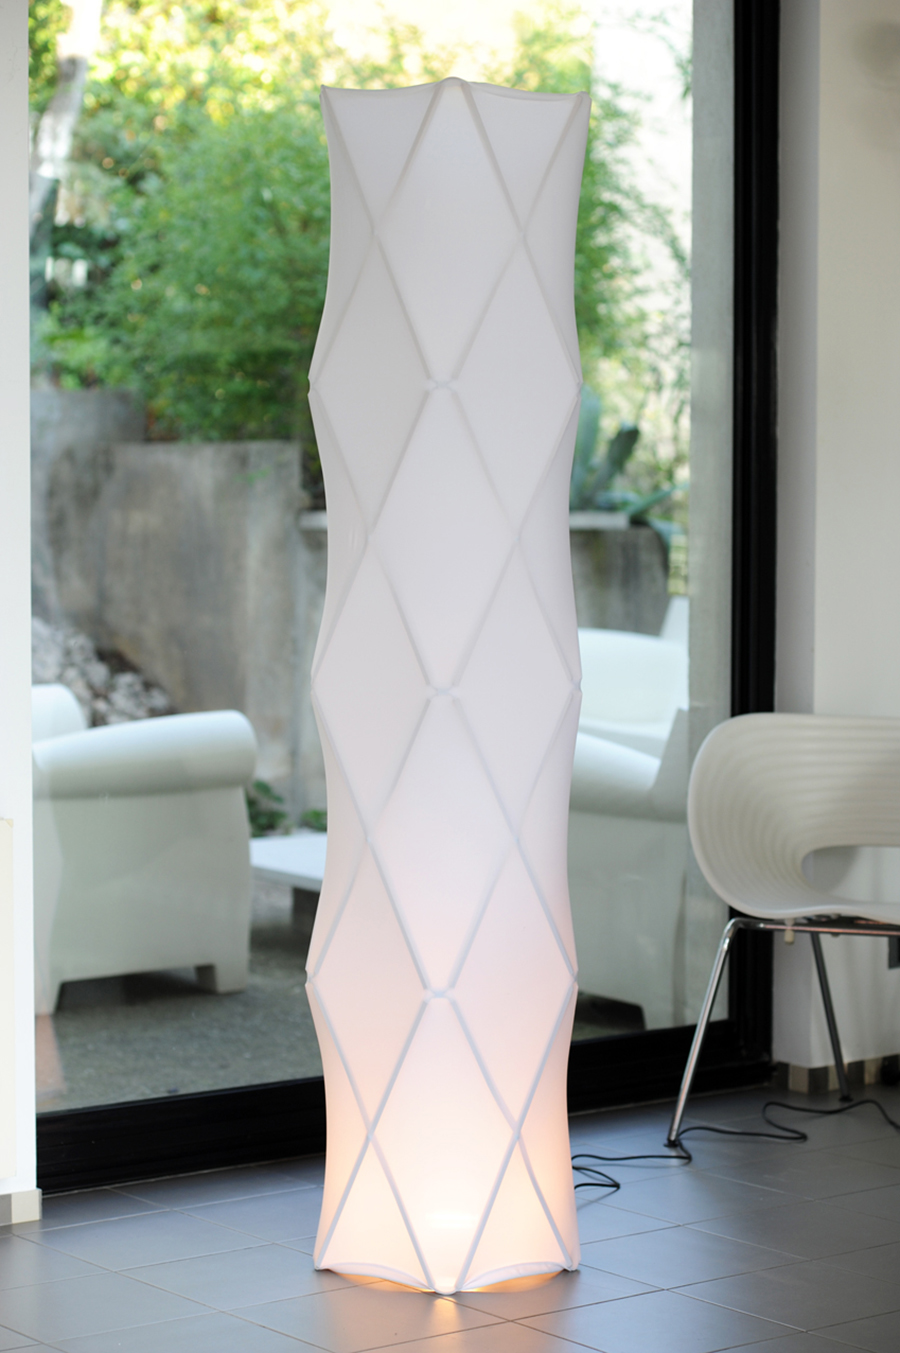 gallix_lampe_mobilier_design